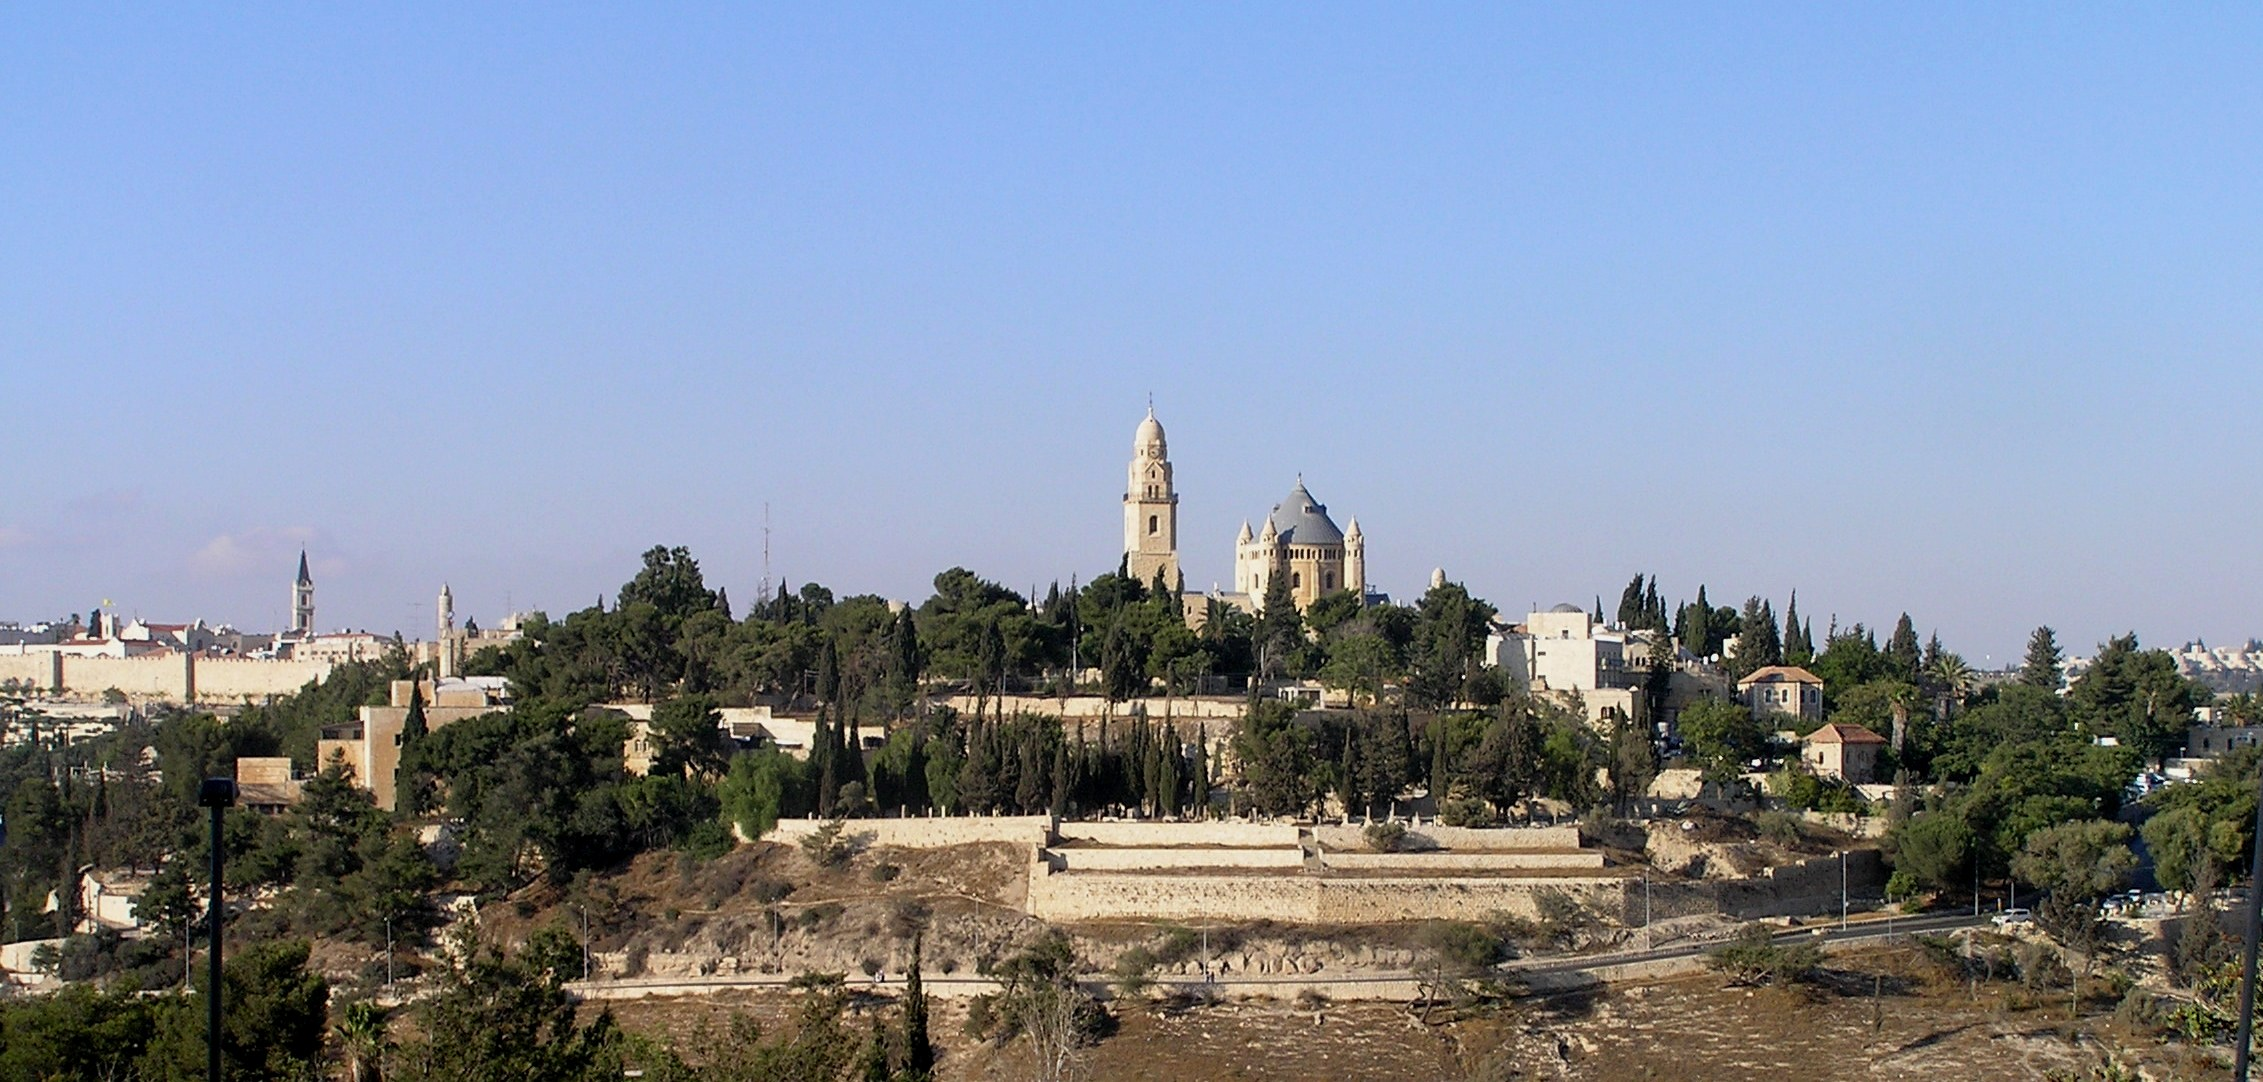 Mount Zion - Wikipedia on map of asia in the time of christ, israel during jesus' time, map of israel at time of christ, map paul's time, map jerusalem time of christ,